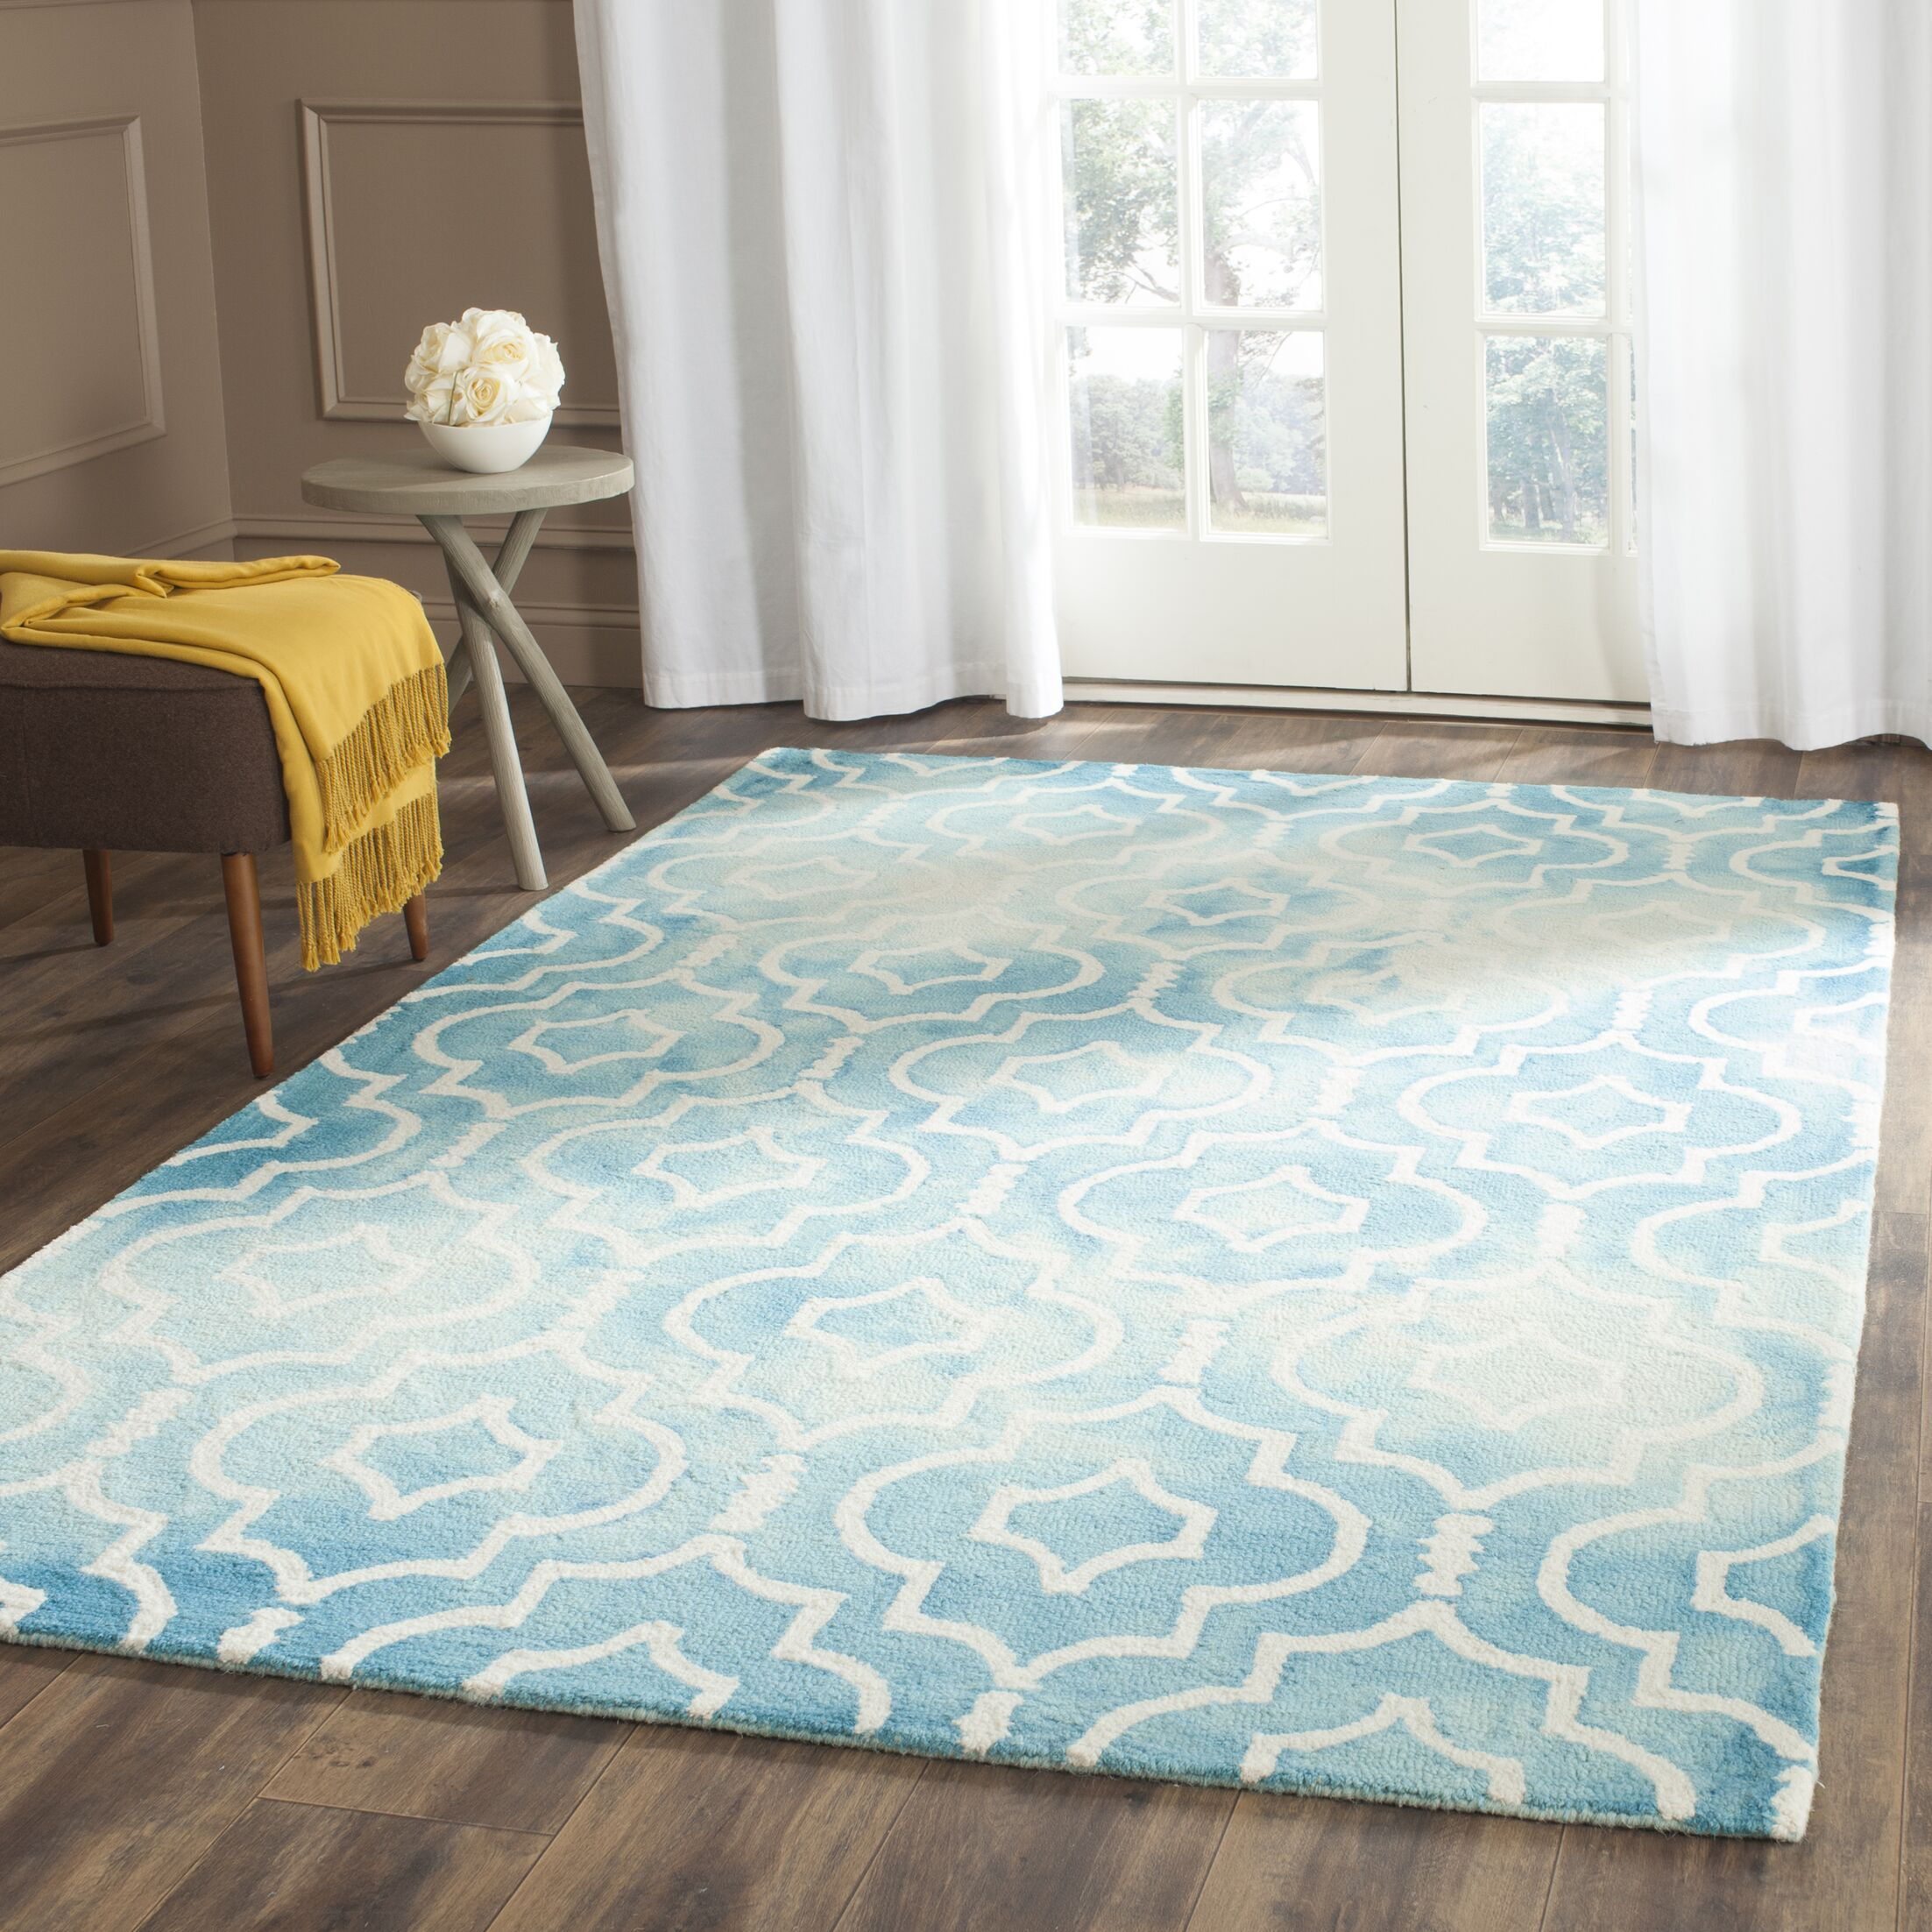 Hand-Tufted Turquoise/Ivory Area Rug Rug Size: Rectangle 3' x 5'